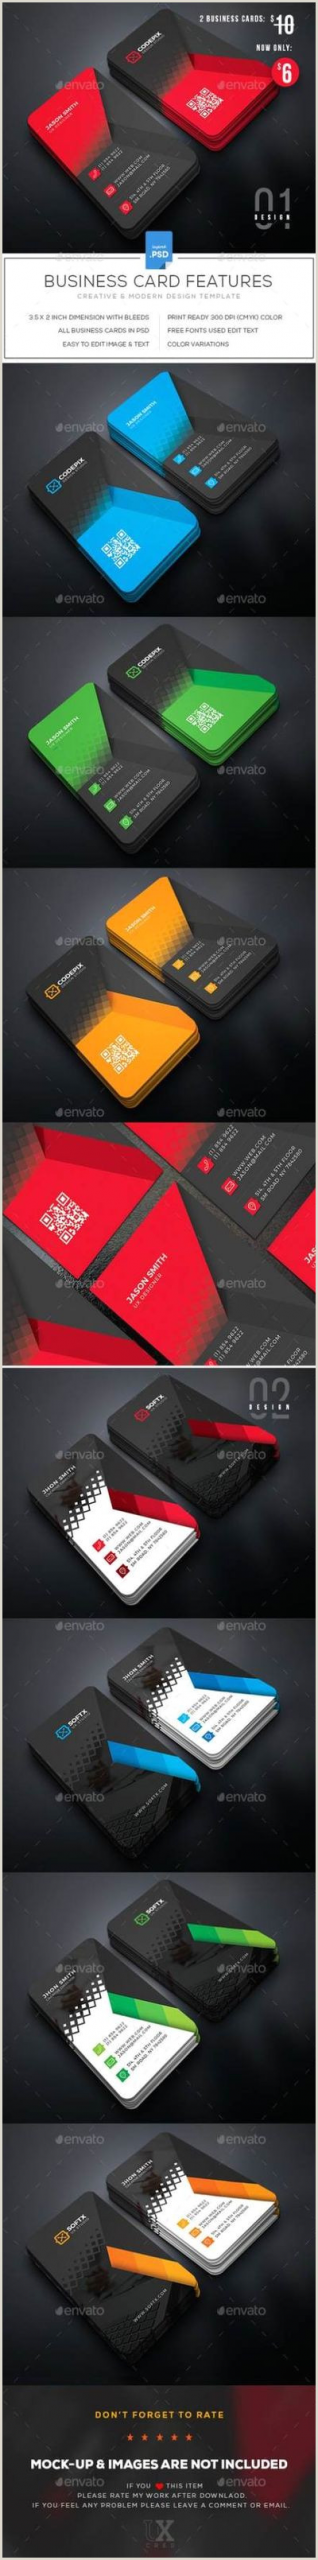 Do Business Cards Work Creative Modern Polygon Business Card